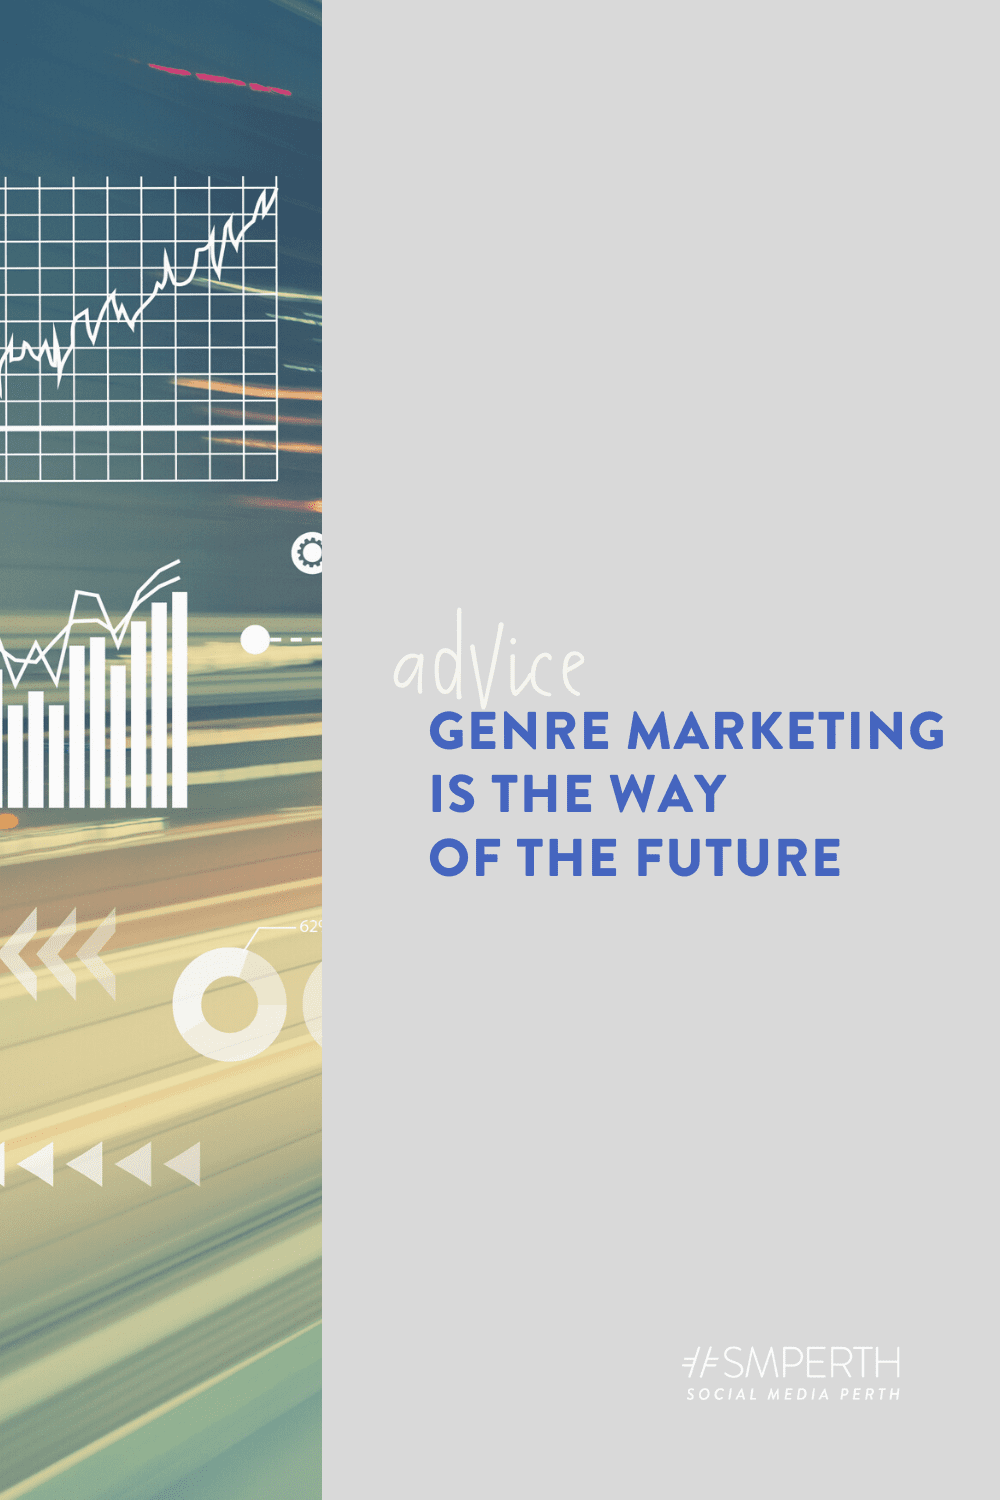 Genre Marketing is the way of the future